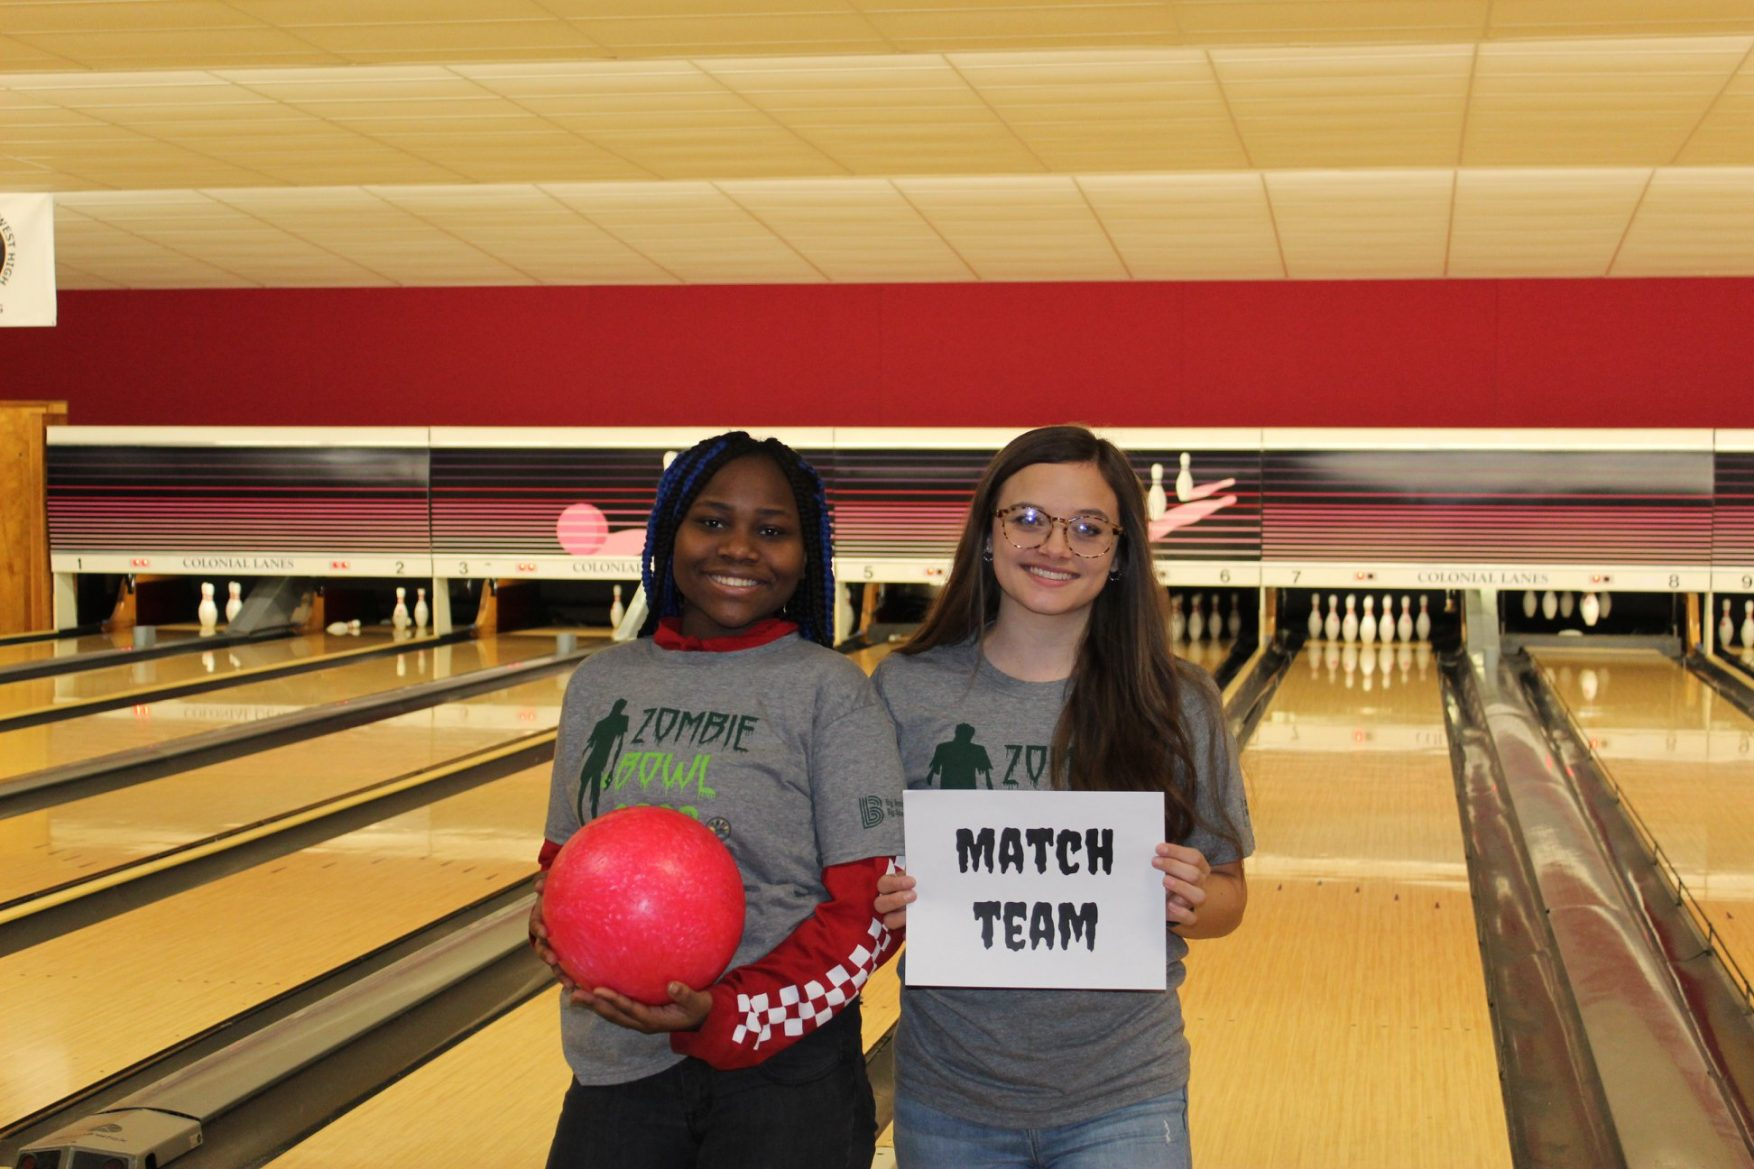 A Big & Little enjoy bowling together at Bowl For Kids' Sake 2020.